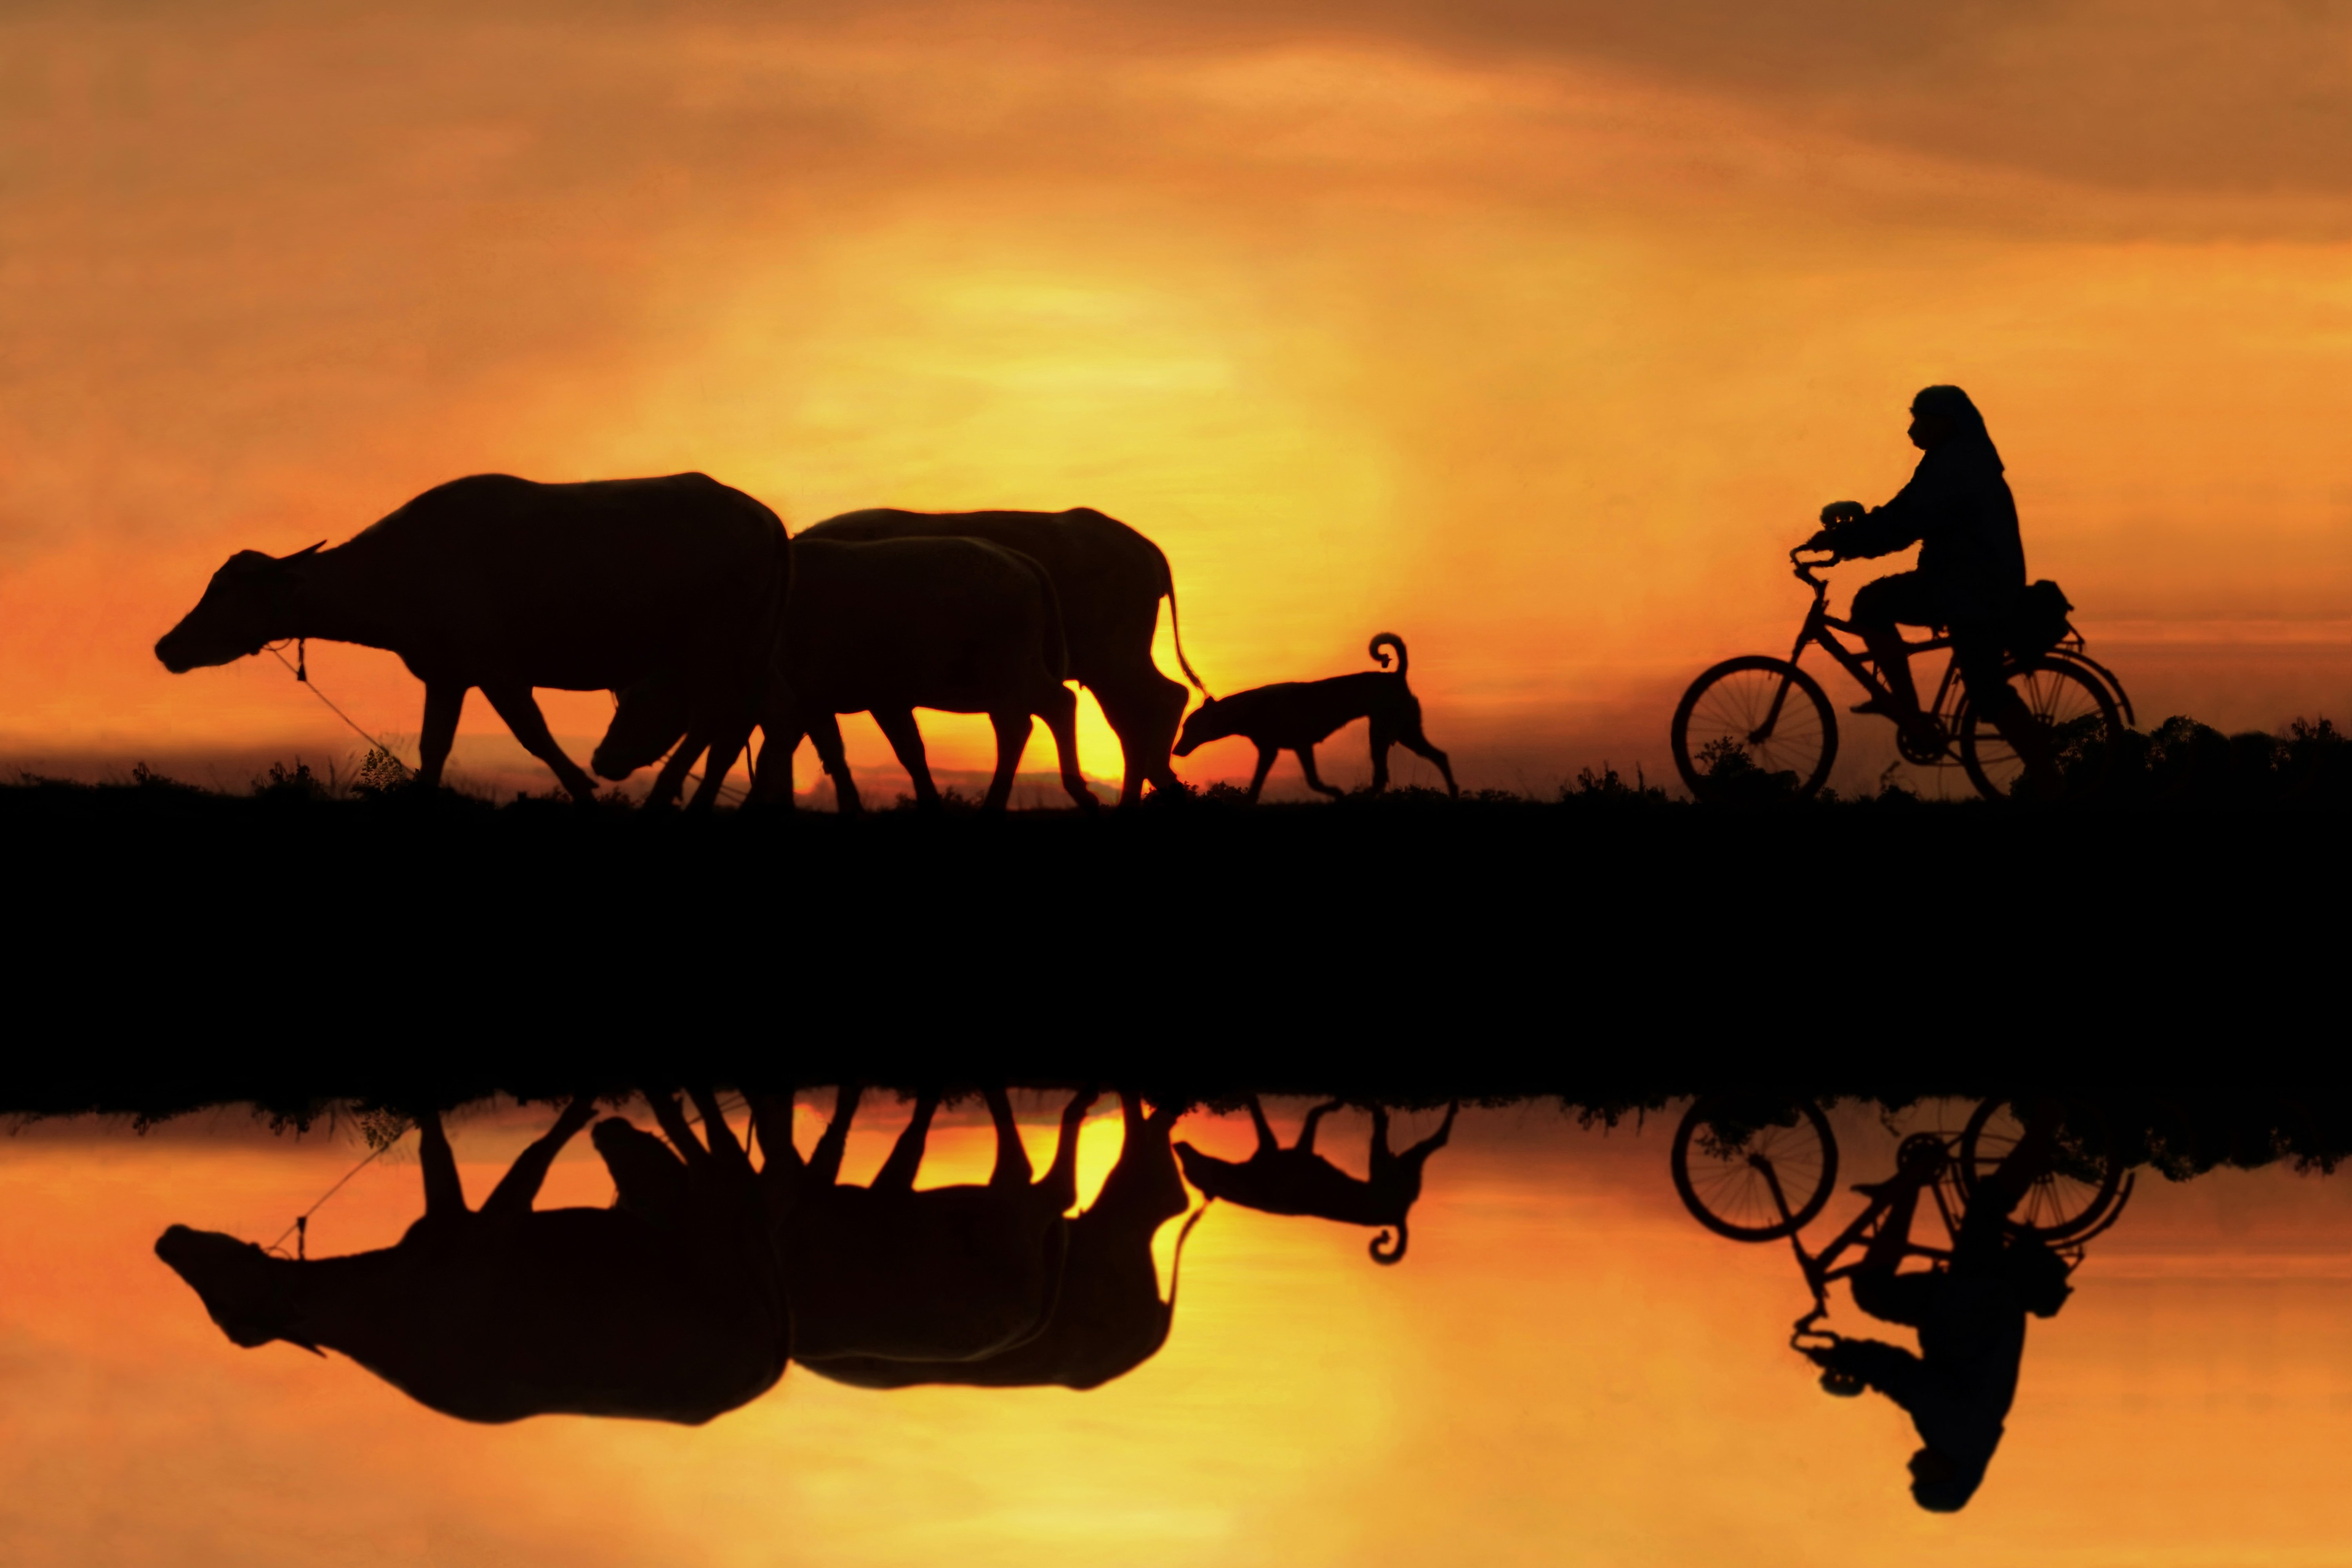 Cycling,BicycleS,cenics,Sunset,Lake,Reflection,People,Two ,People,Nature,Silhouette,Thailand,Atmospheric ,MoodBeauty ,In NatureCloud - SkyColor ,Image,Horizontal,On The Move,Outdoors,Photography,Sky,Sunlight,Togetherness,Transportatio, sarawut intarob